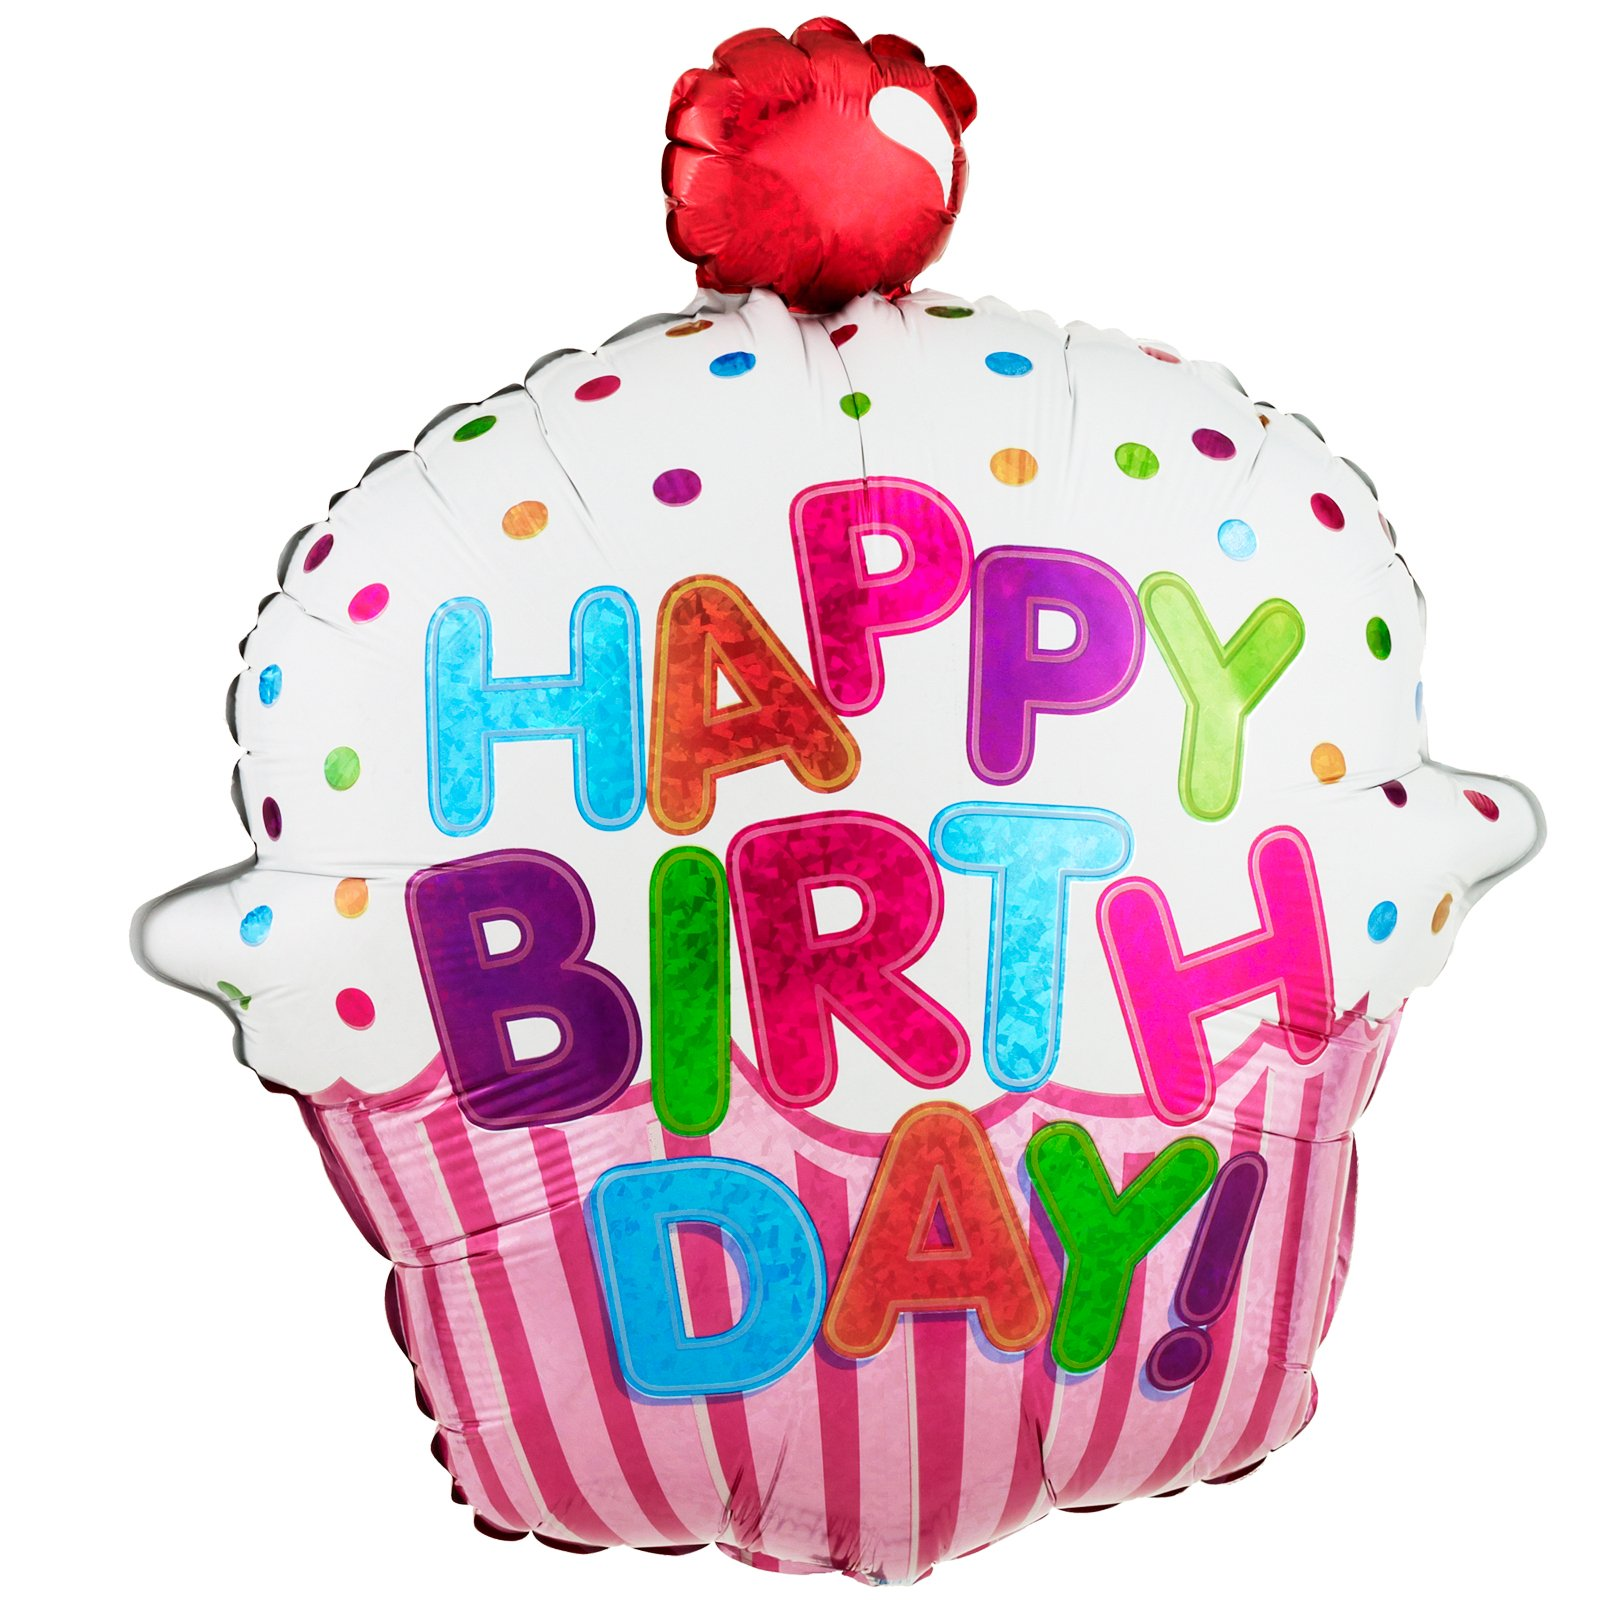 free happy birthday brother clipart ; funny-and-lovely-birthday-wishes-to-send-to-your-brother-on-his-birthday-2